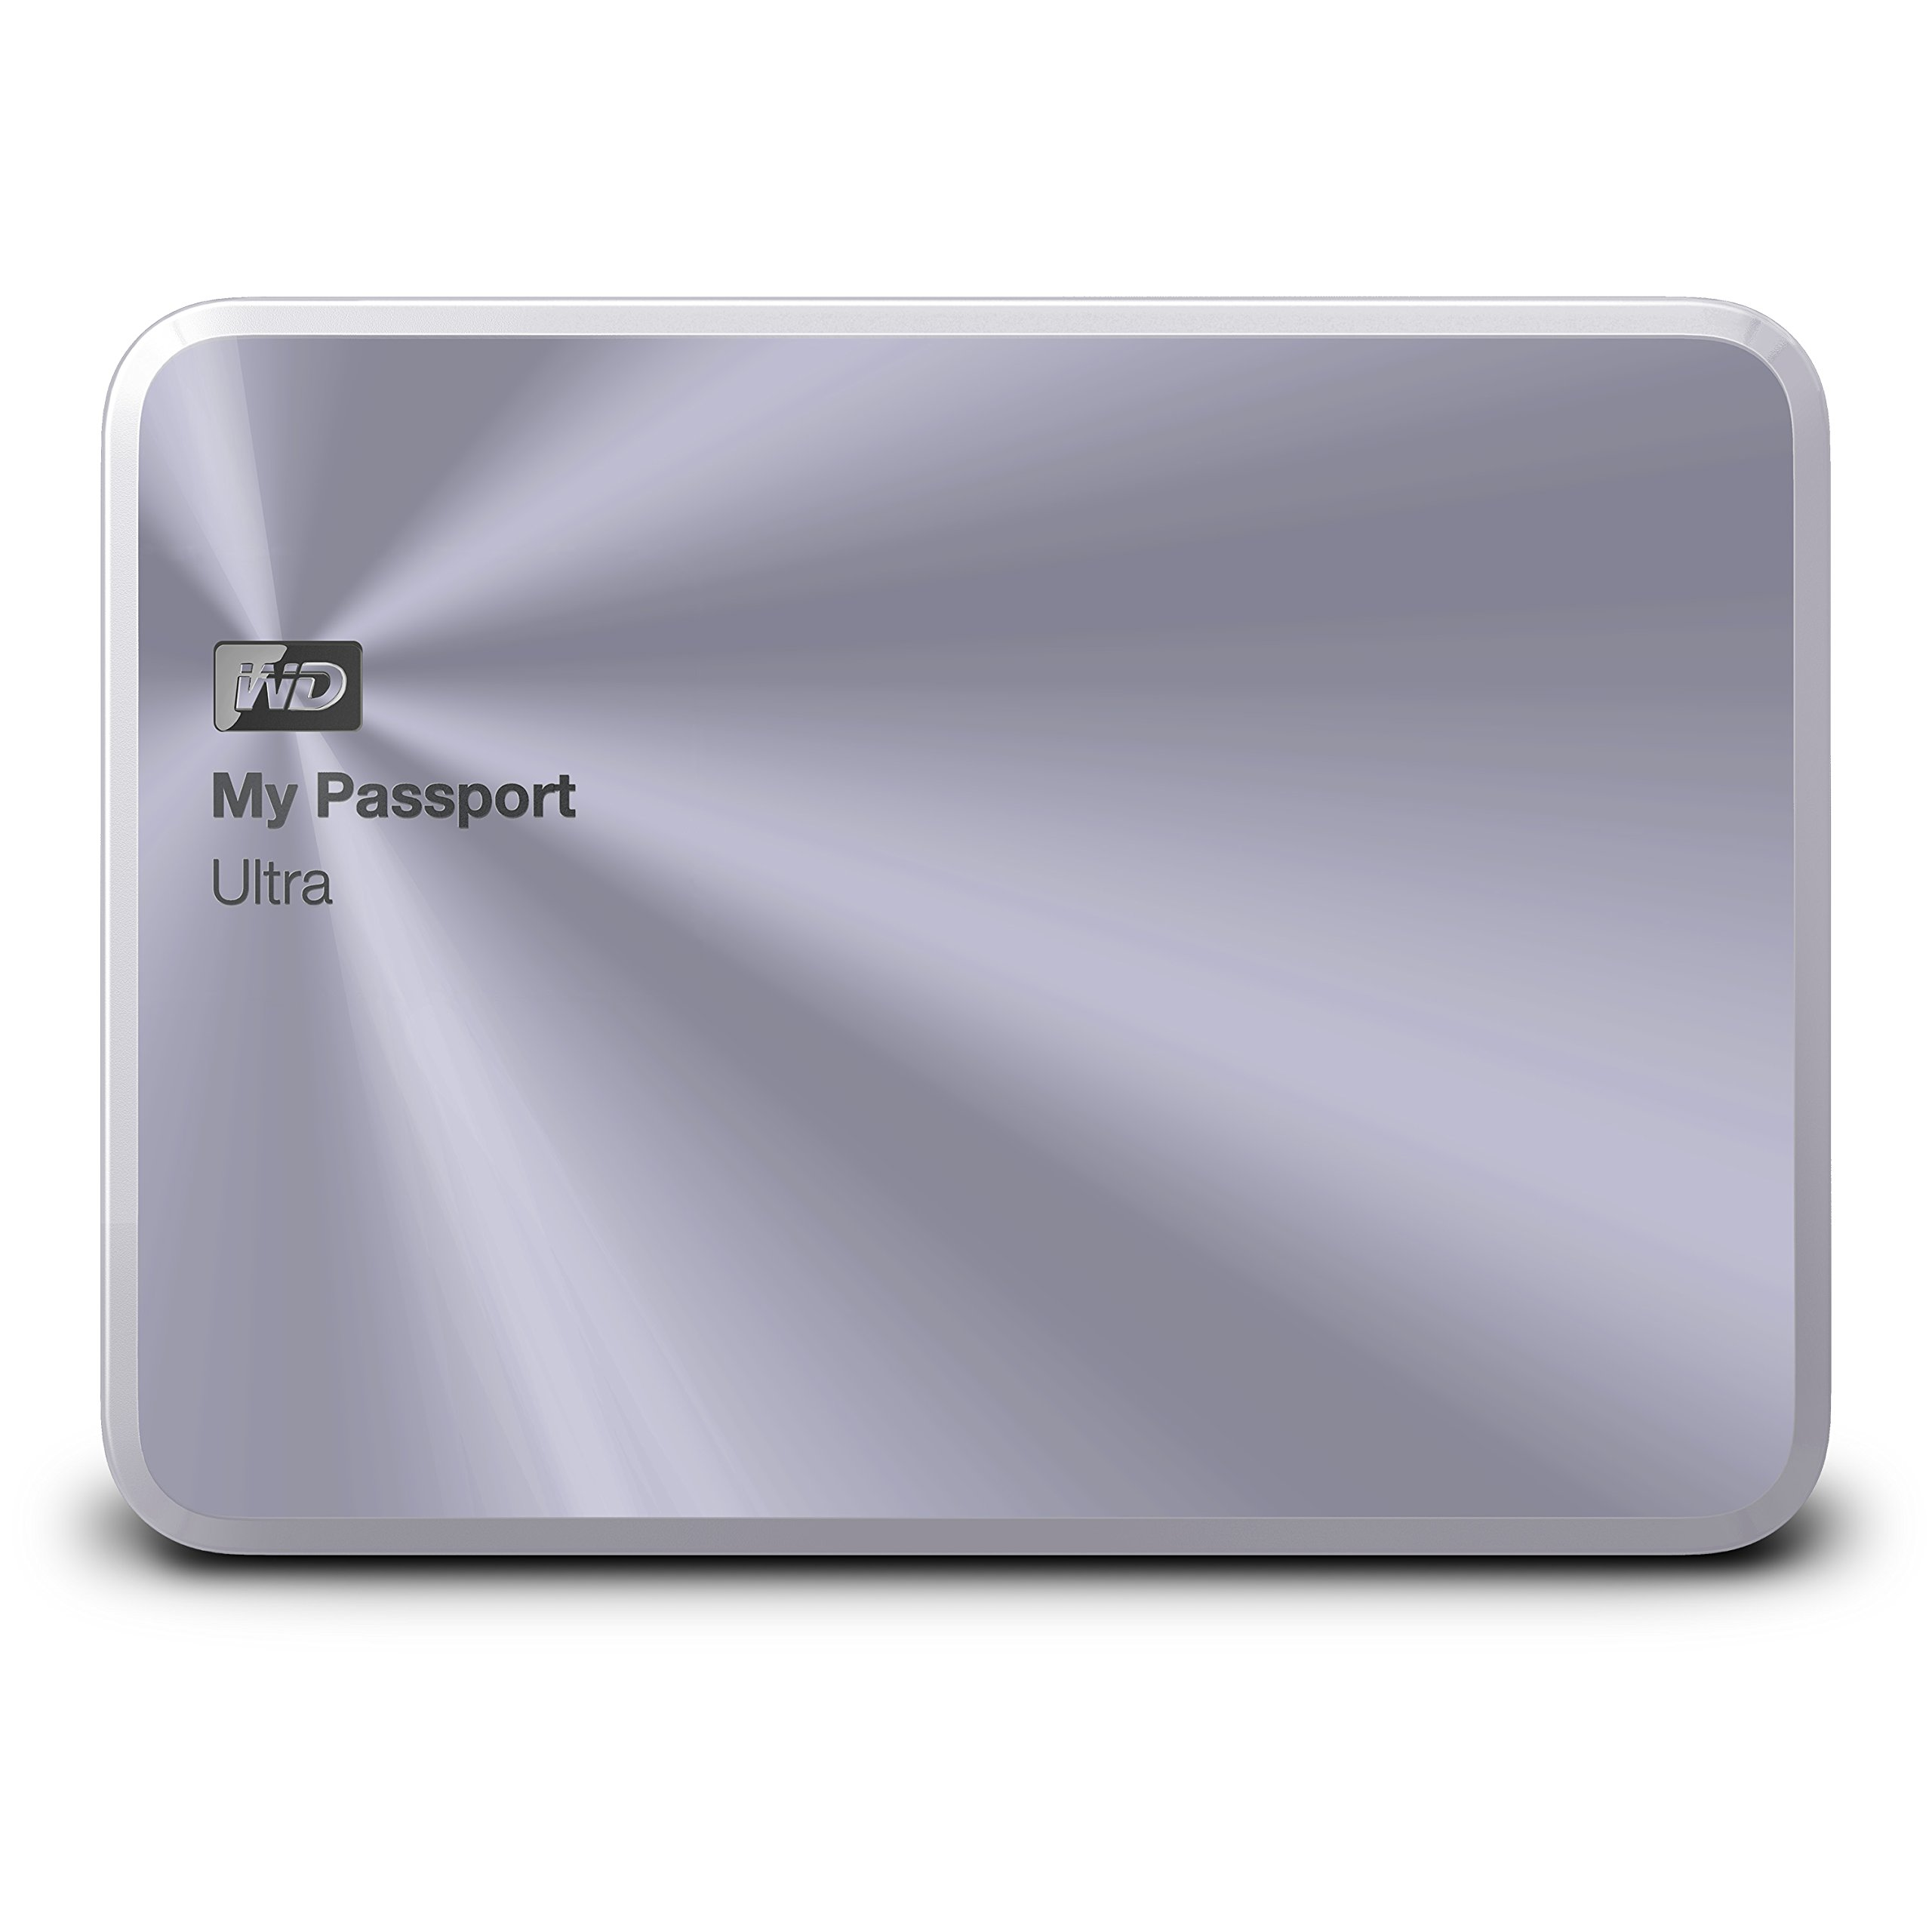 WD 1TB Silver My Passport Ultra Metal Edition Portable External Hard Drive - USB 3.0 - WDBTYH0010BSL-NESN